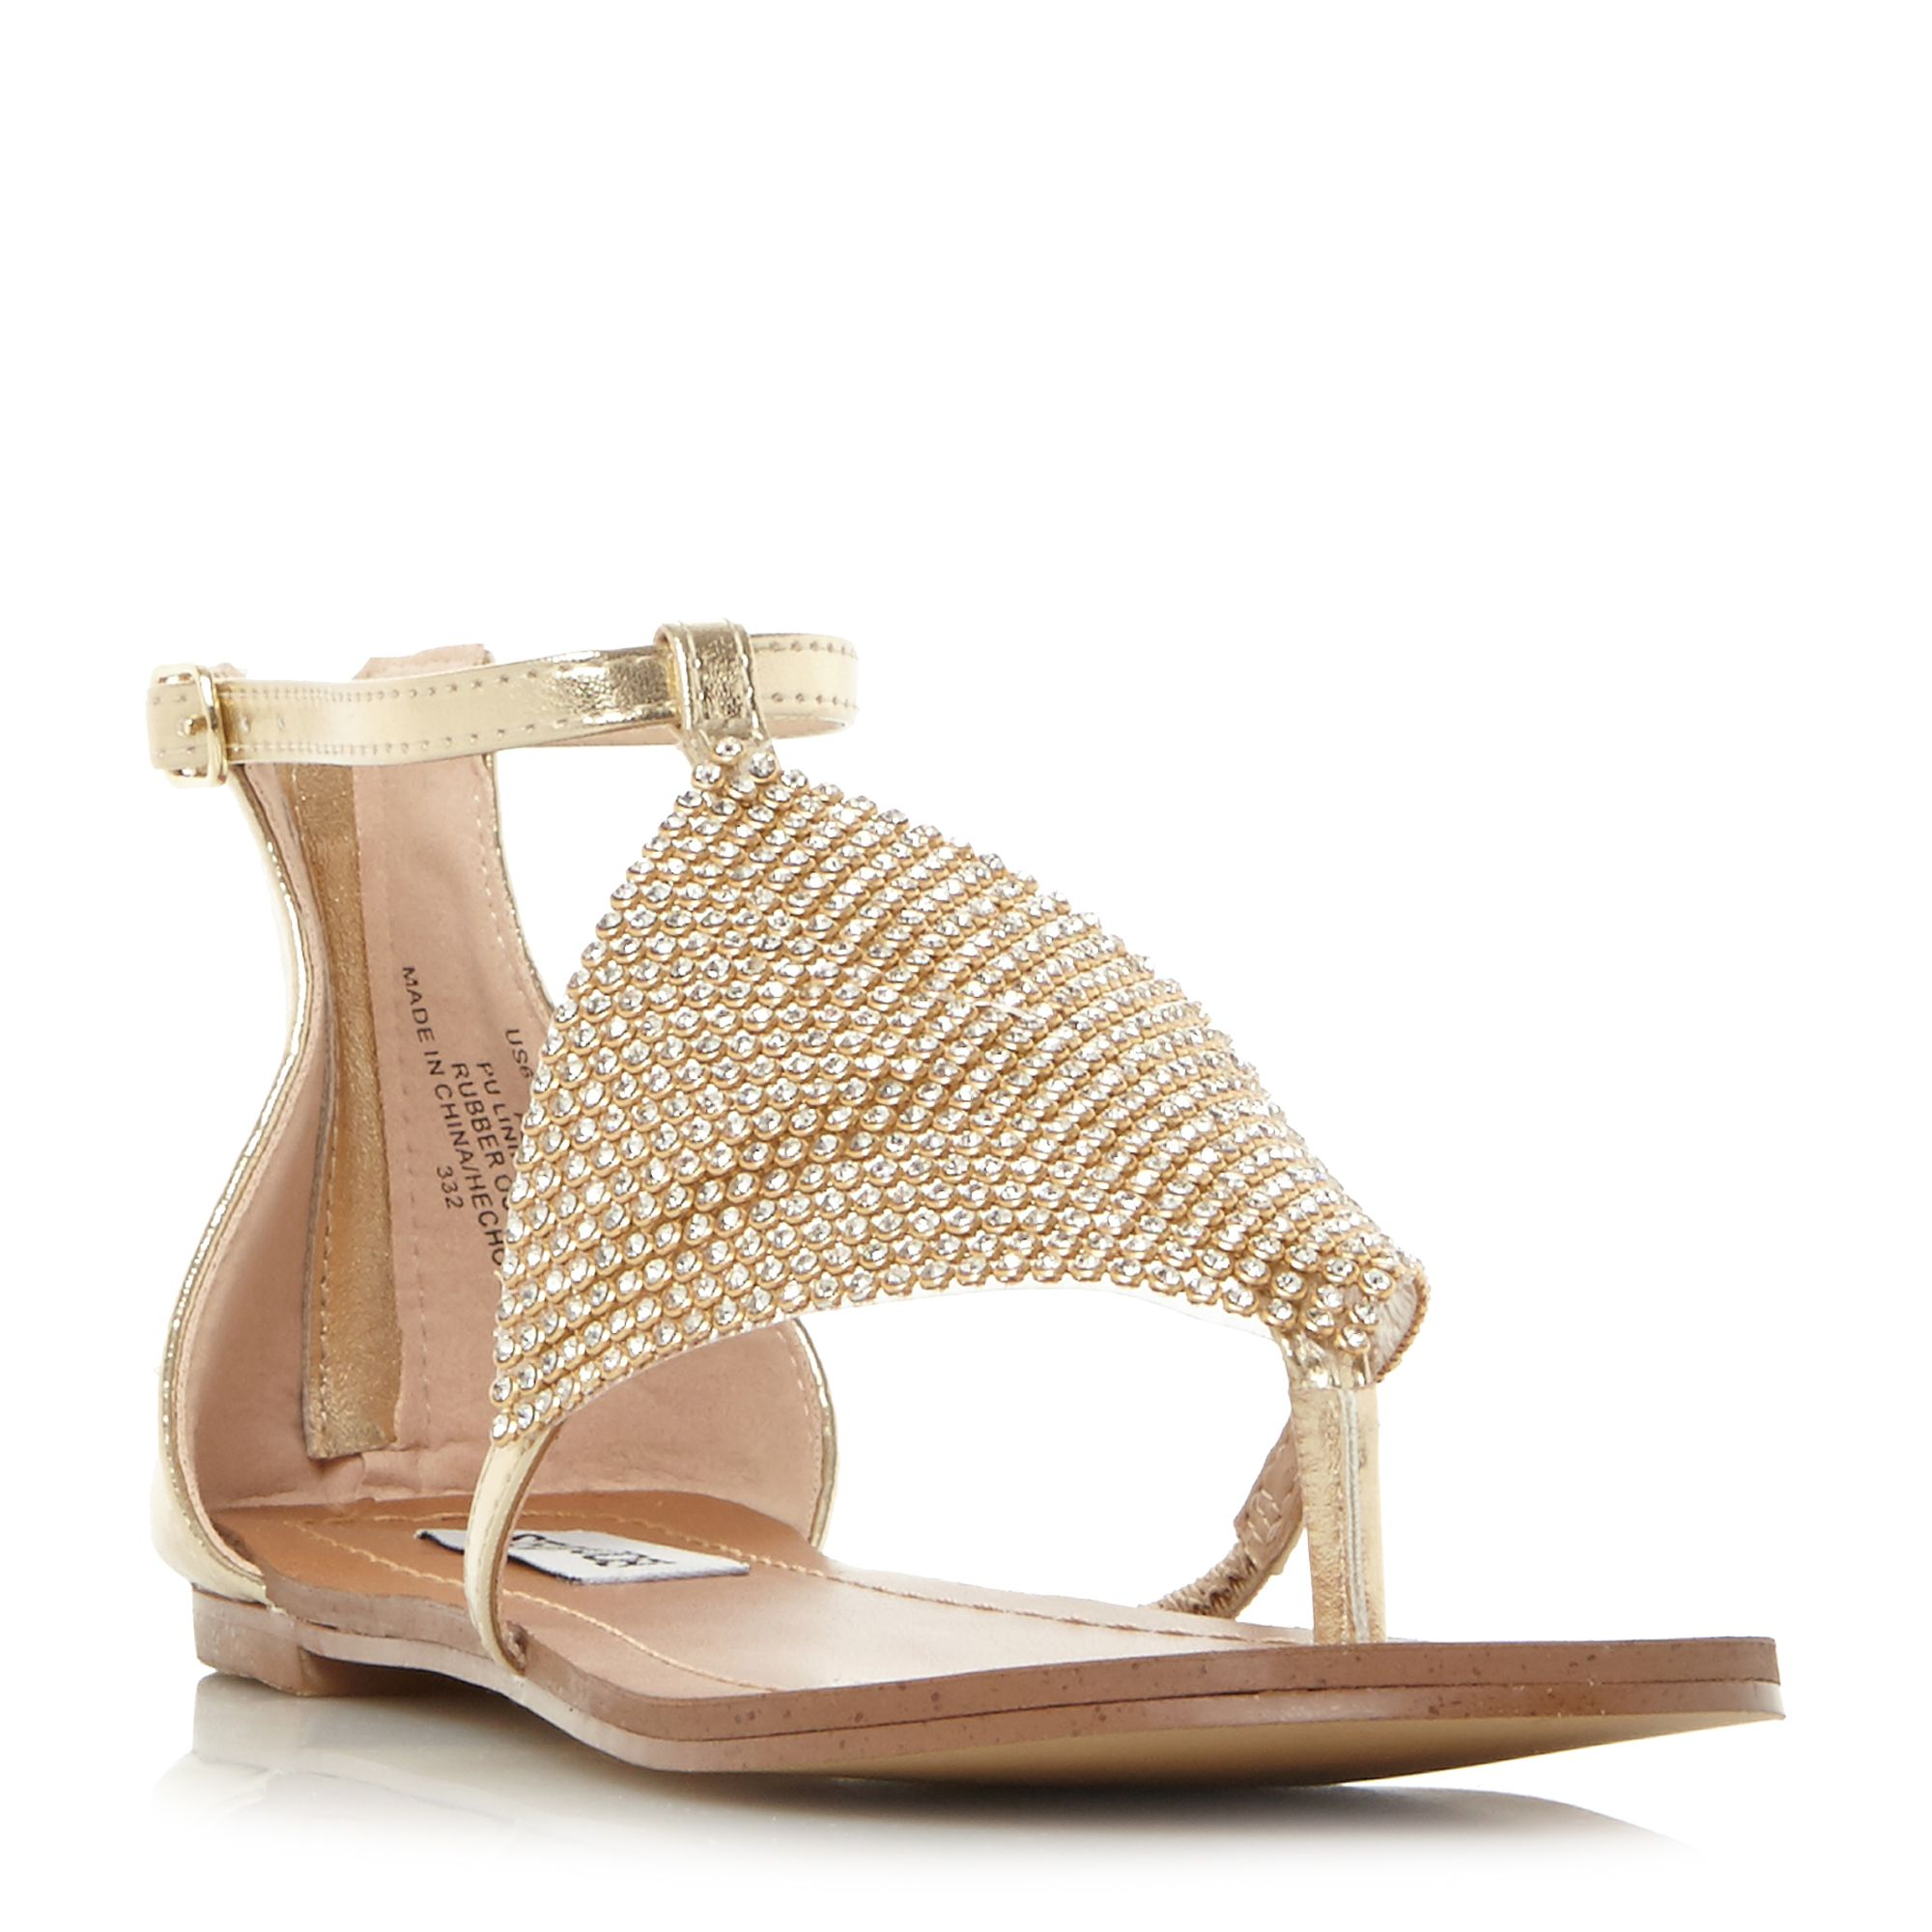 Steve Madden Cord Sm Diamante Chain Mail Flat Shoes, Gold